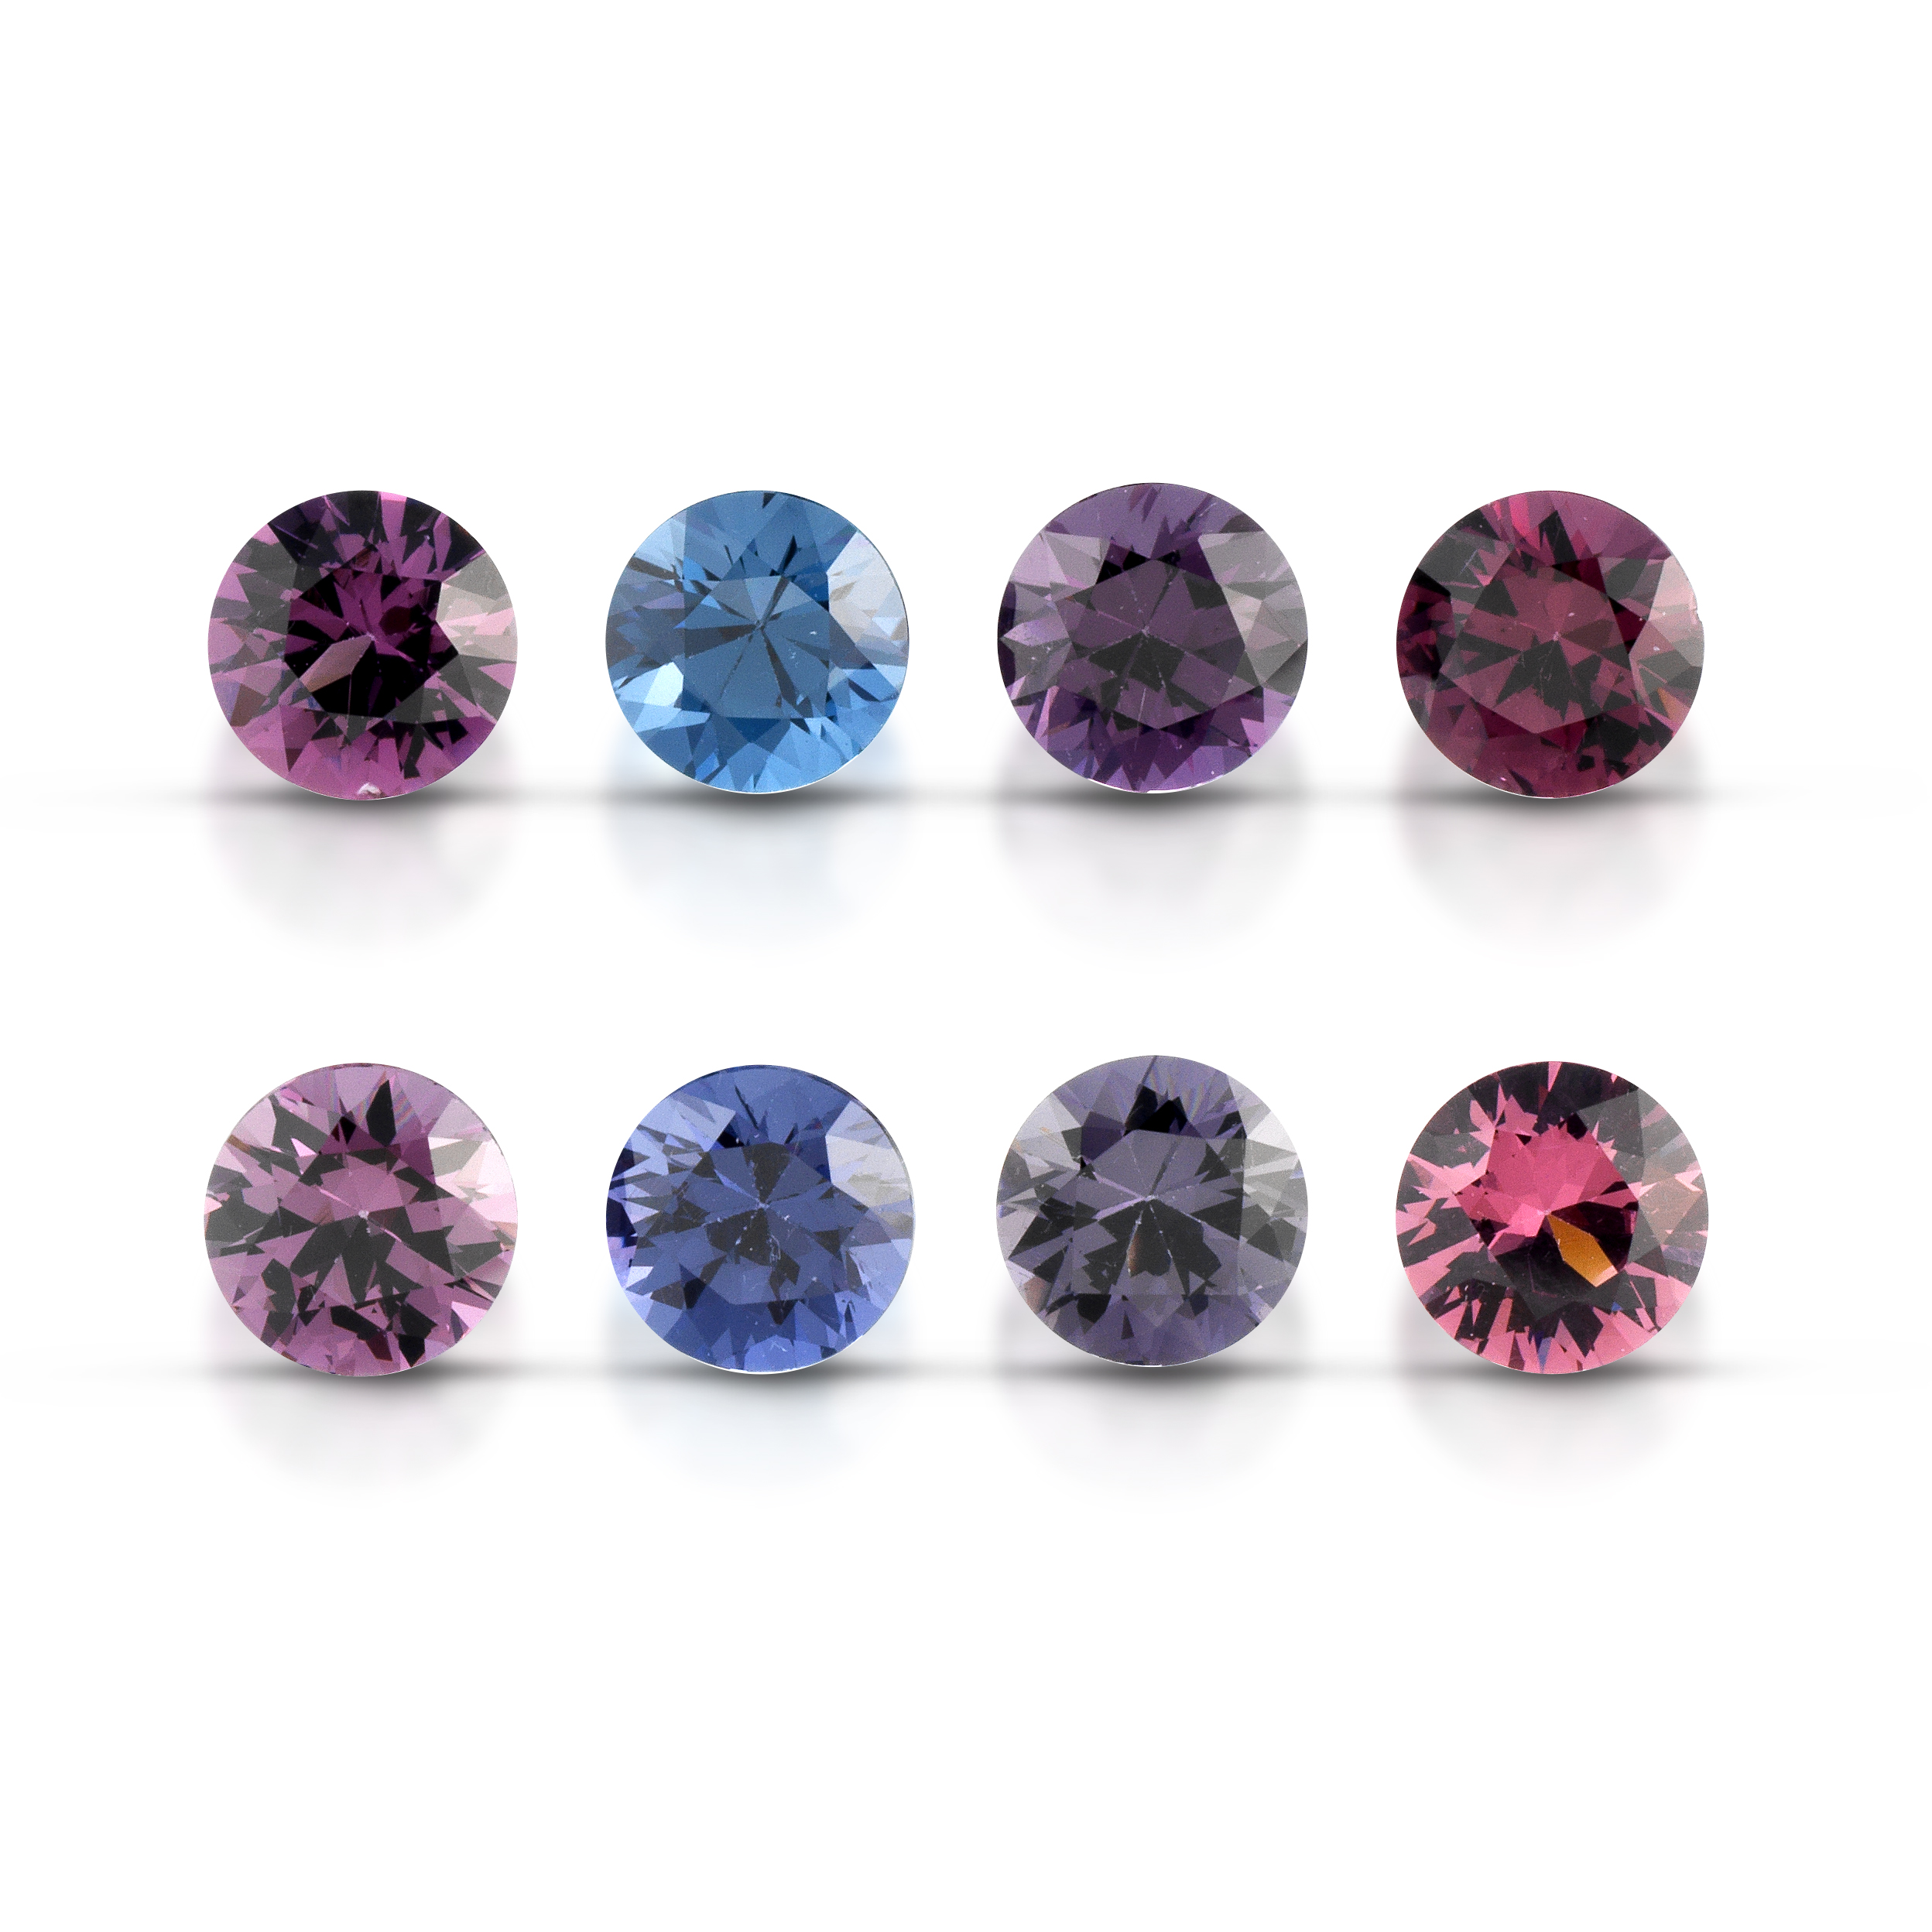 ClaudiaHamann_Spinel_Tanzania_Round_7mm_12,67cts_SNK16C34